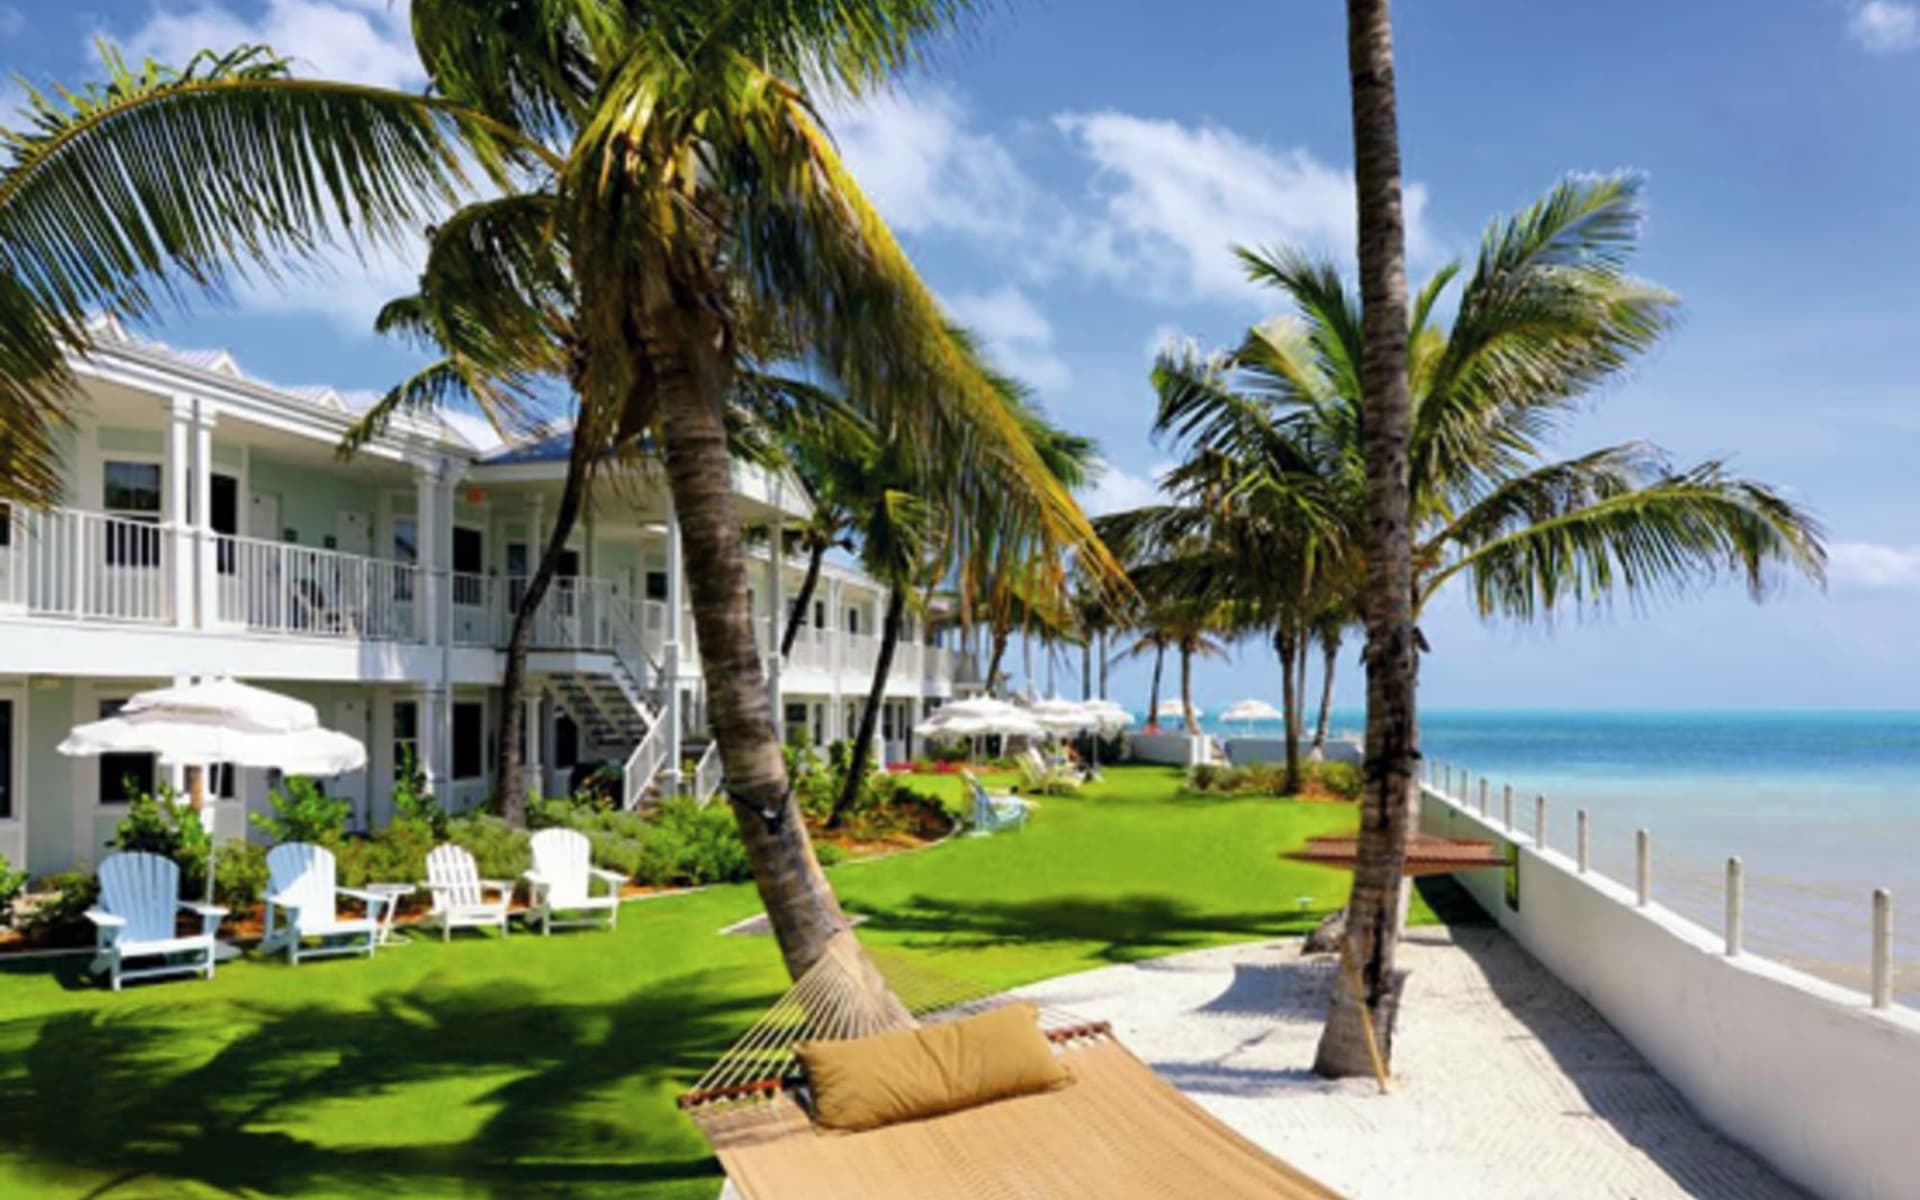 Southernmost Beach Resort in Key West: facilities southernmost beach resort hängematte palmen